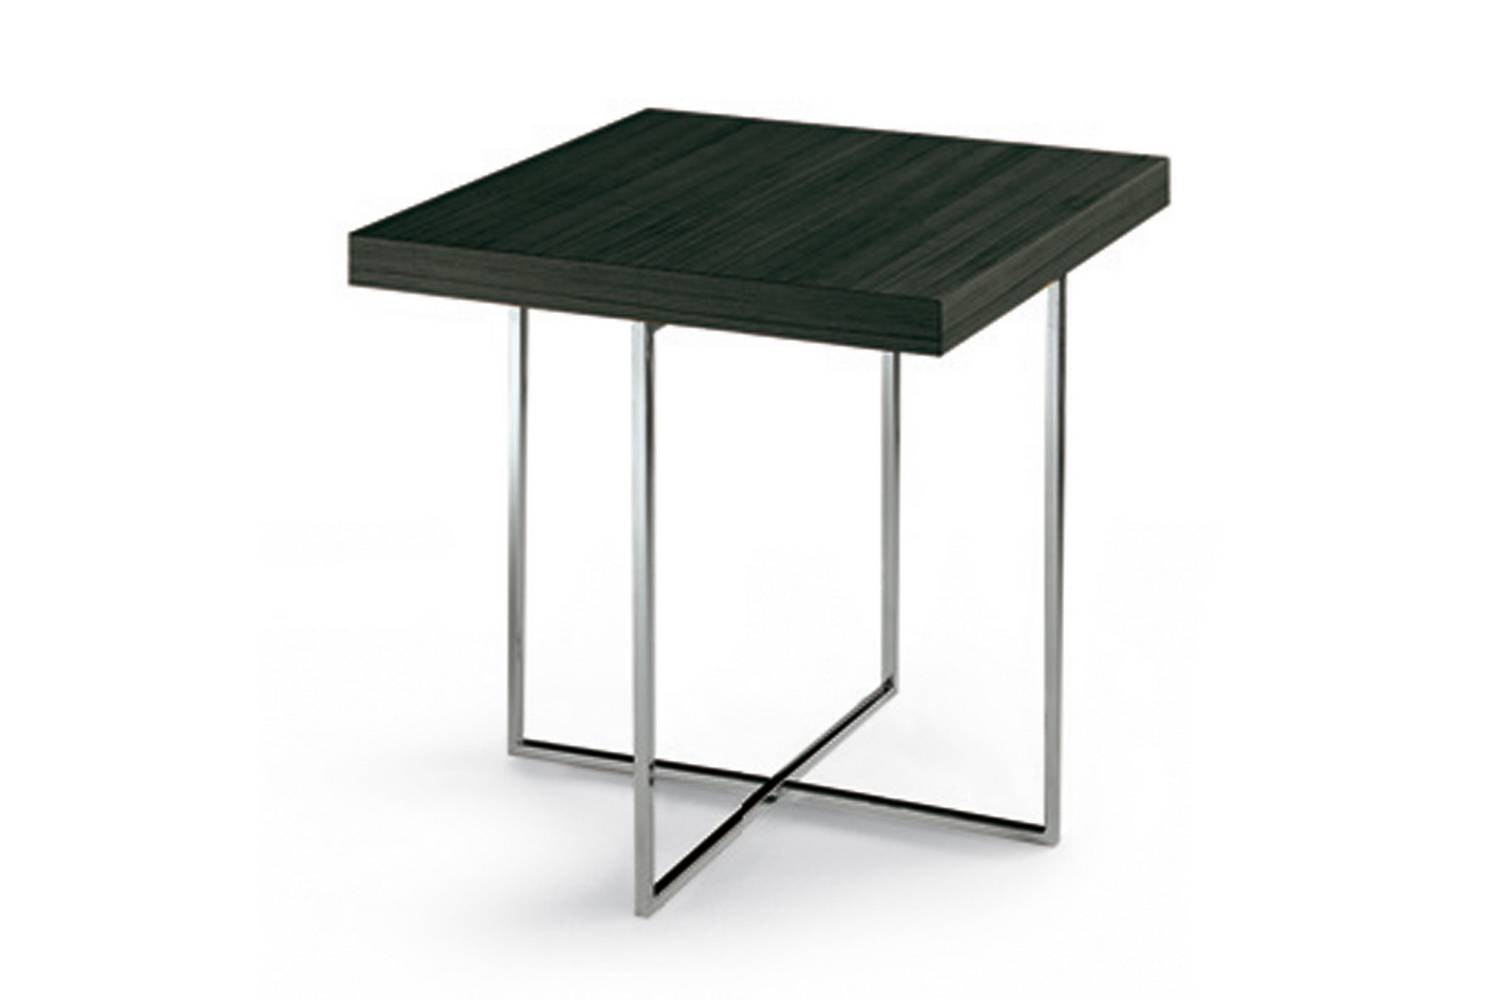 Yard Coffee Table by Paolo Piva for Poliform